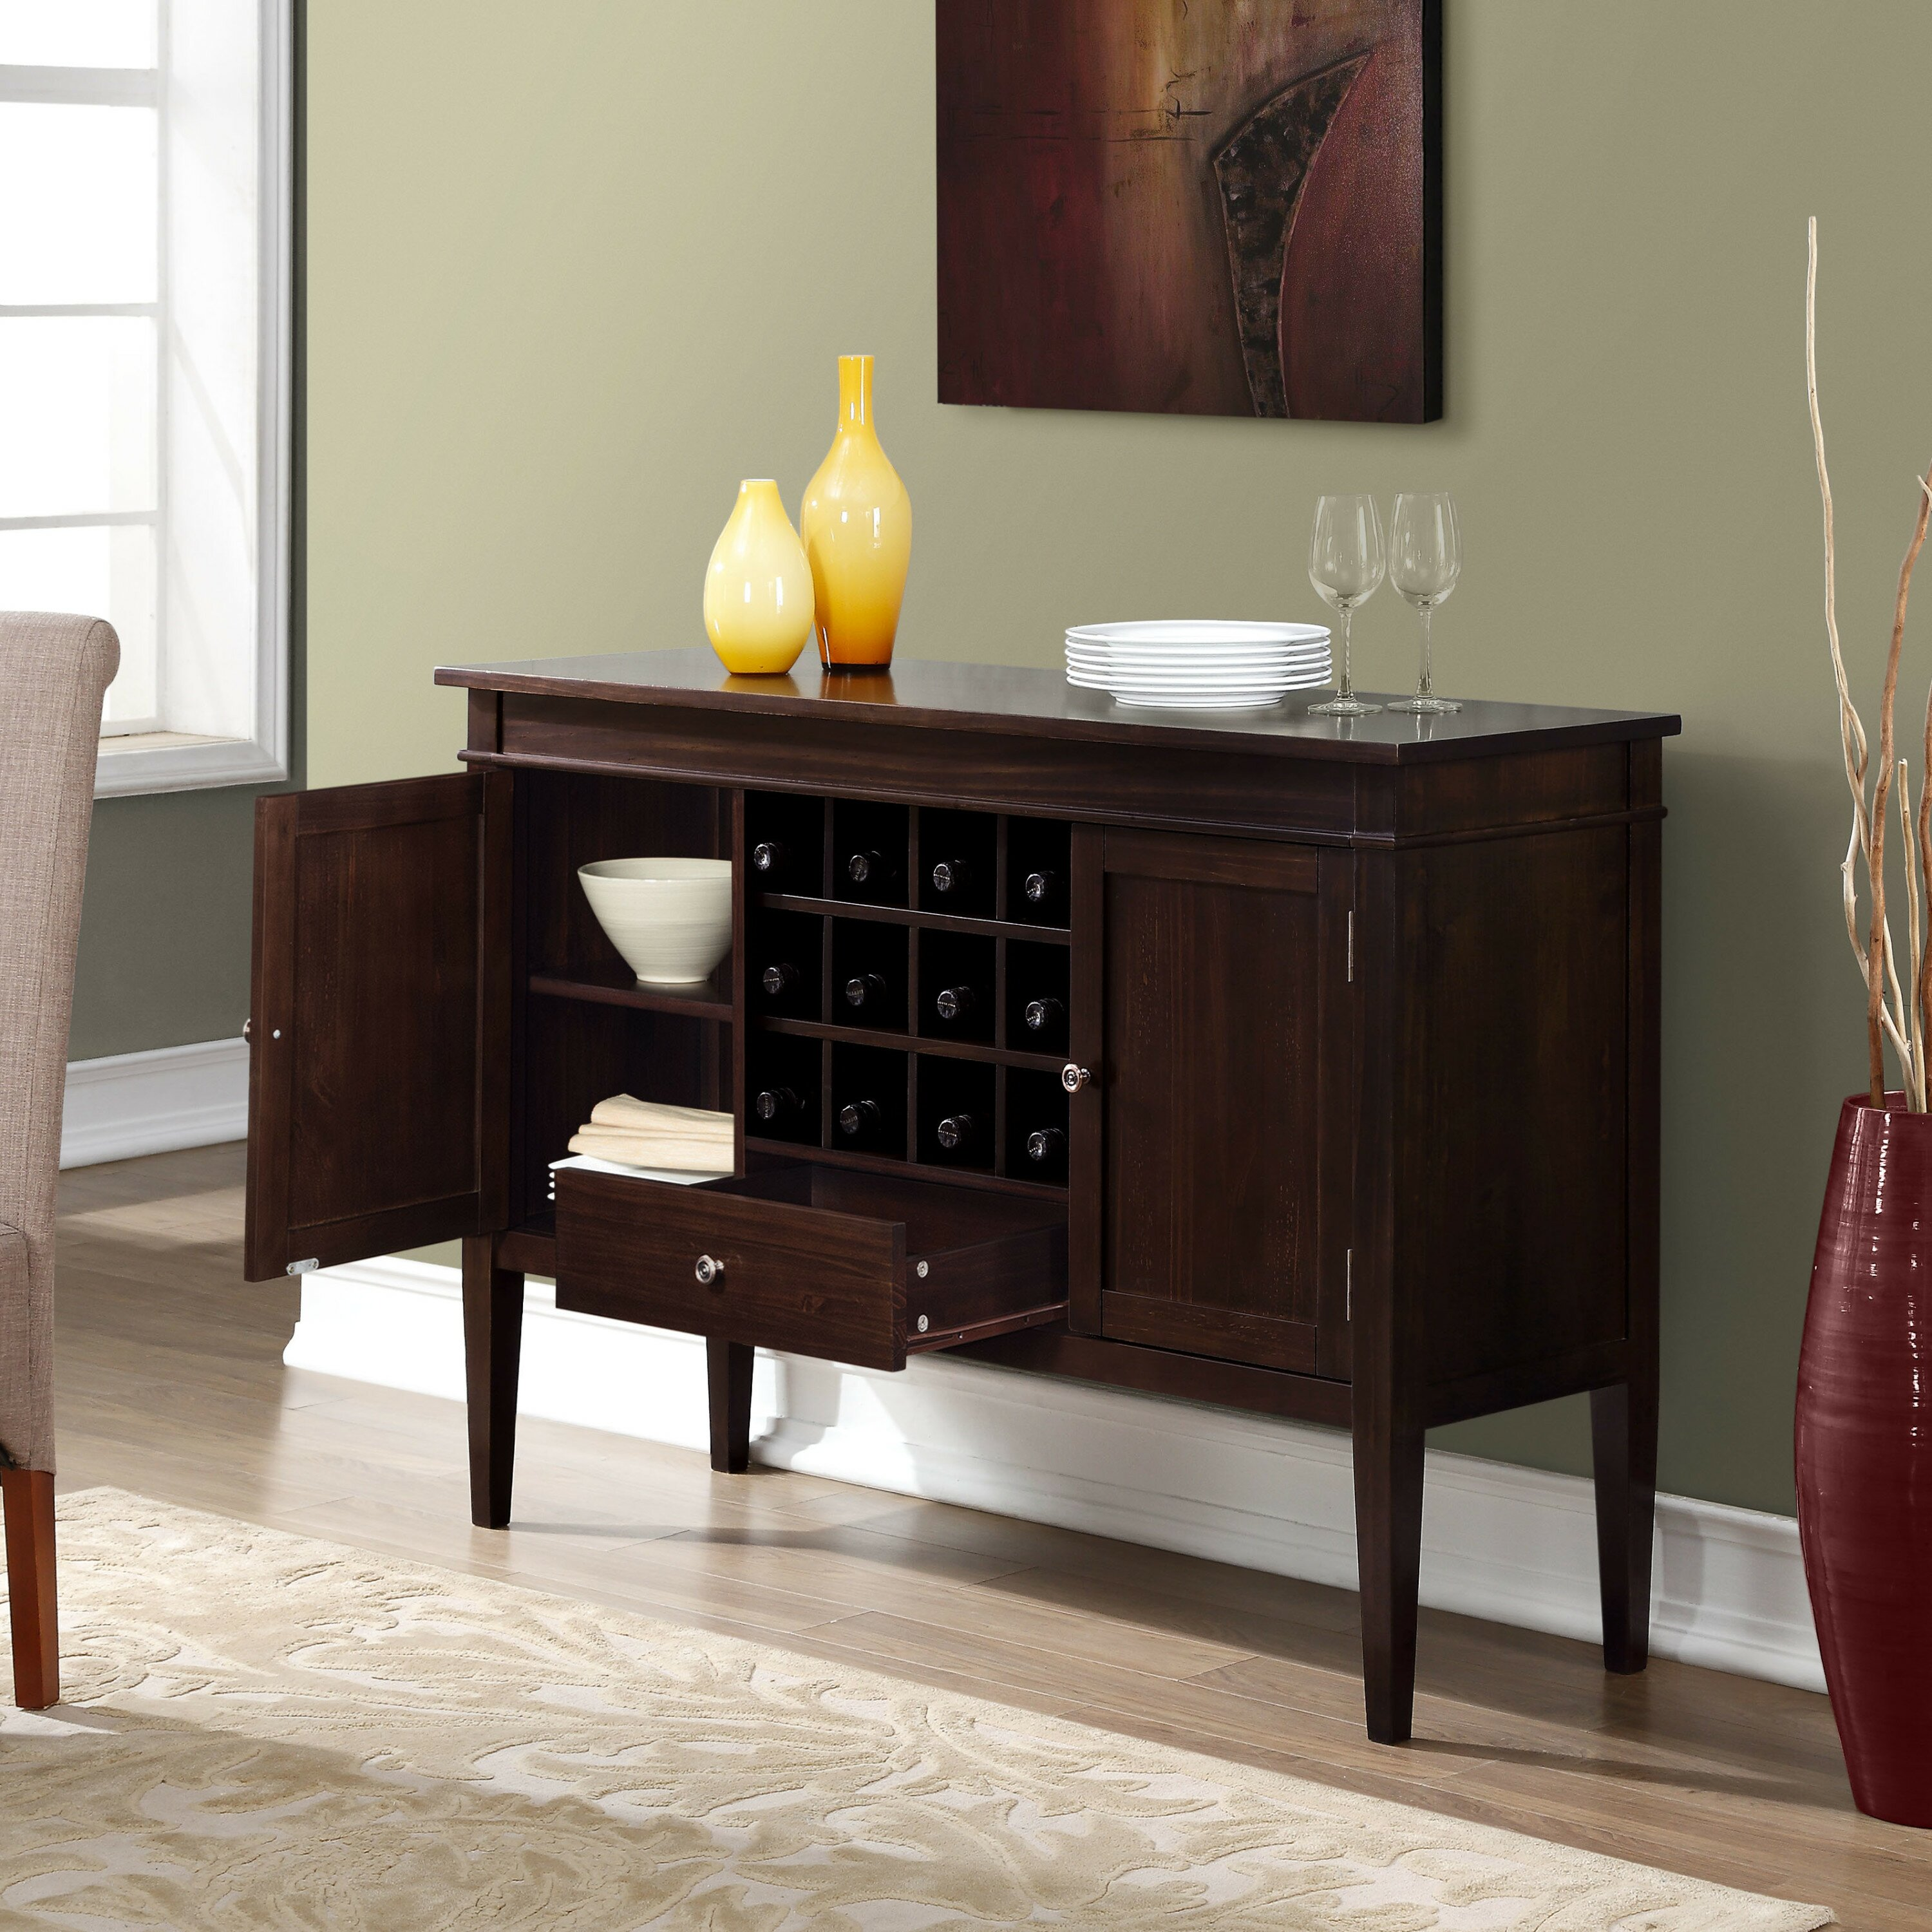 simpli home carlton sideboard buffet and wine rack